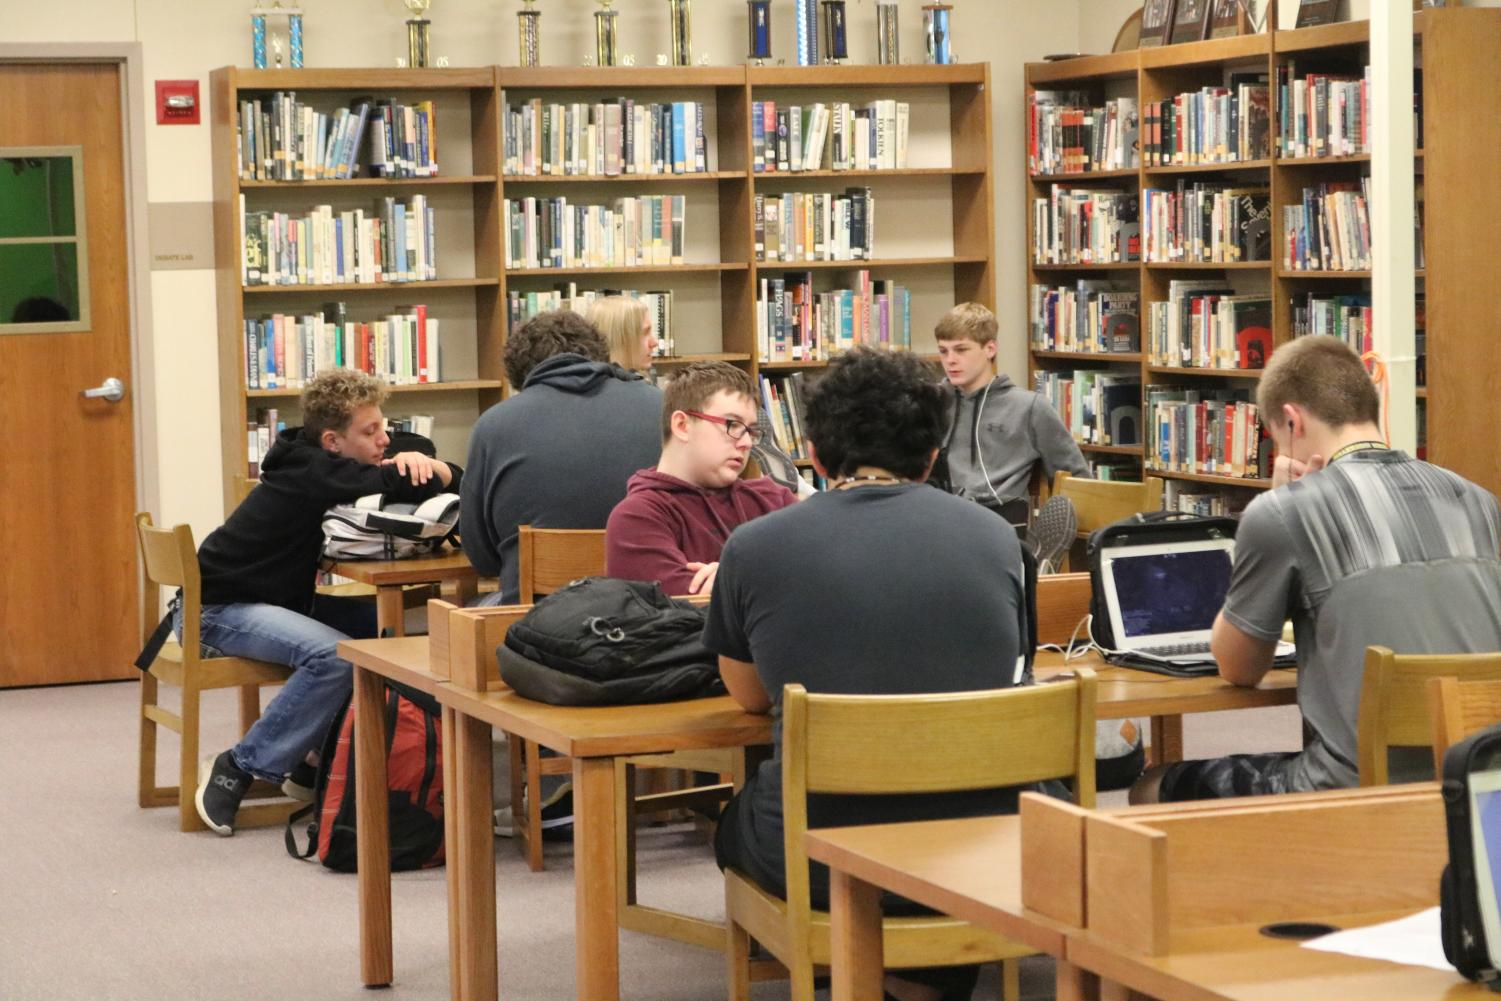 The media center is a popular destination for students throughout the day. It hosts study halls and AOs.